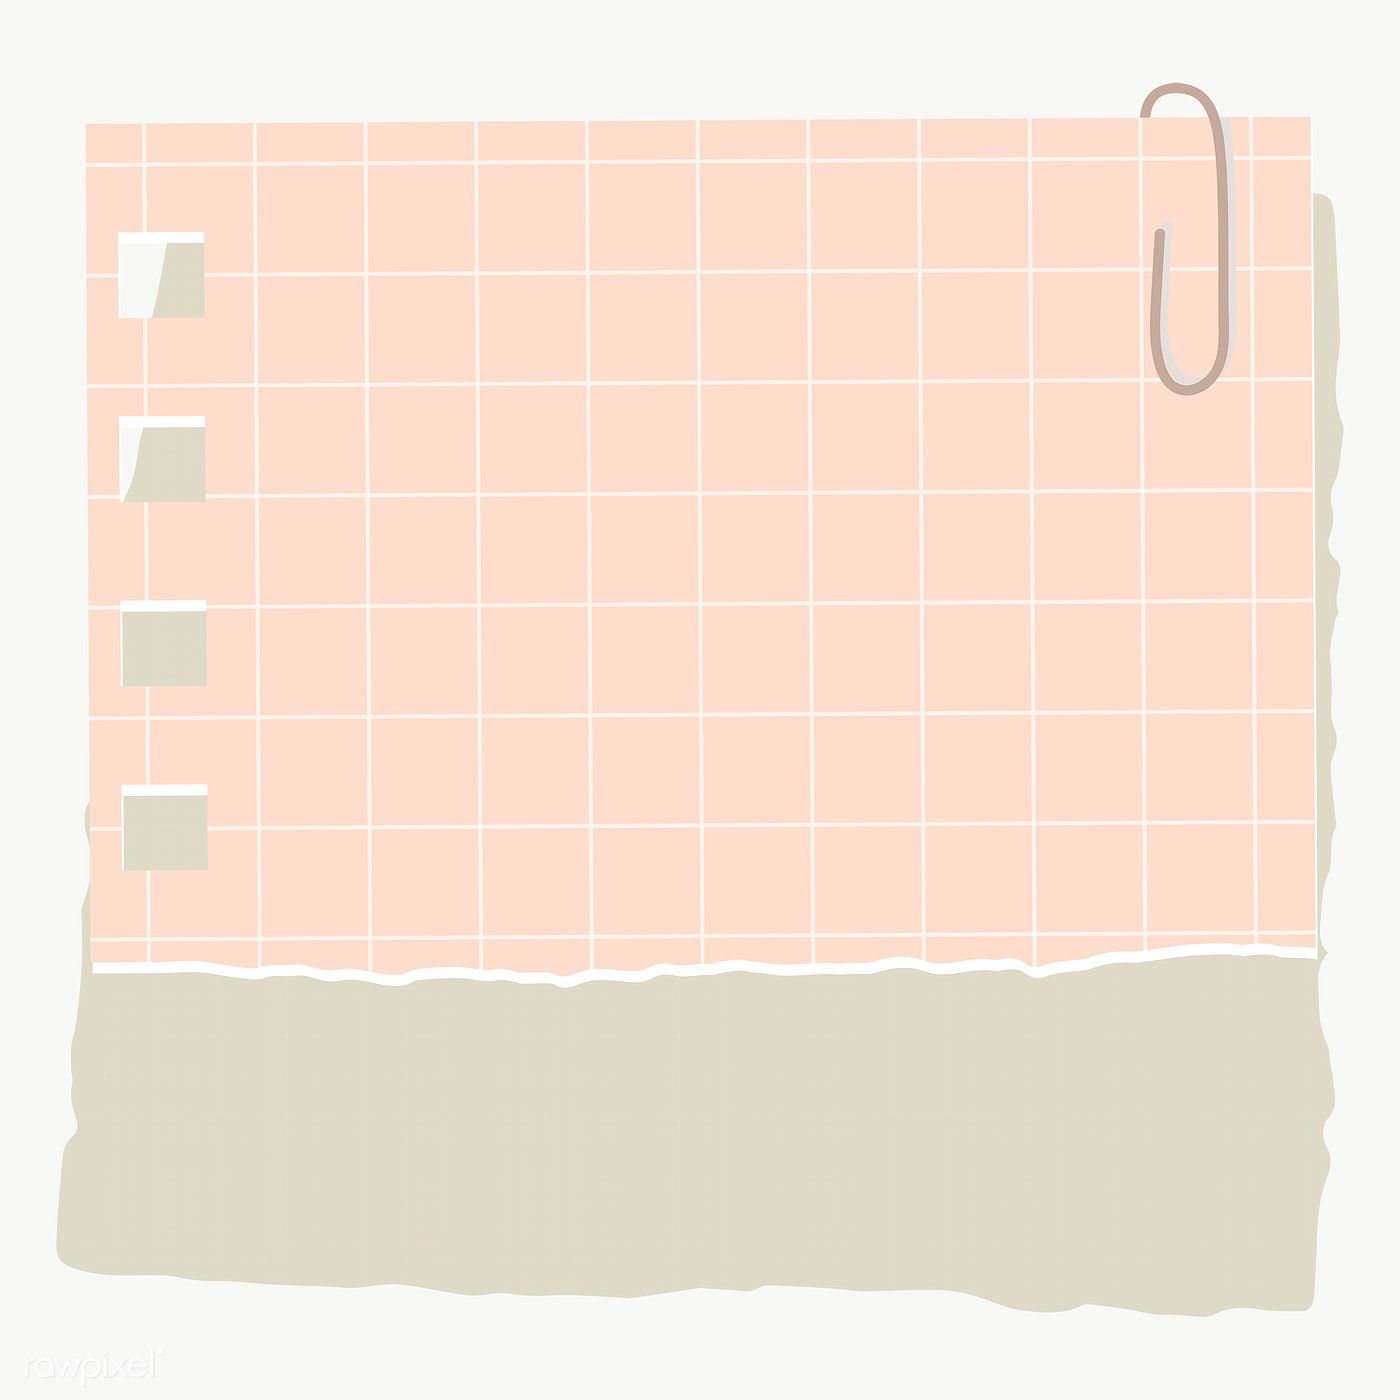 Pink Square Paper Note Social Ads Template Transparent Png Free Image By Rawpixel Com Manotang Note Paper Paper Background Texture Aesthetic Stickers